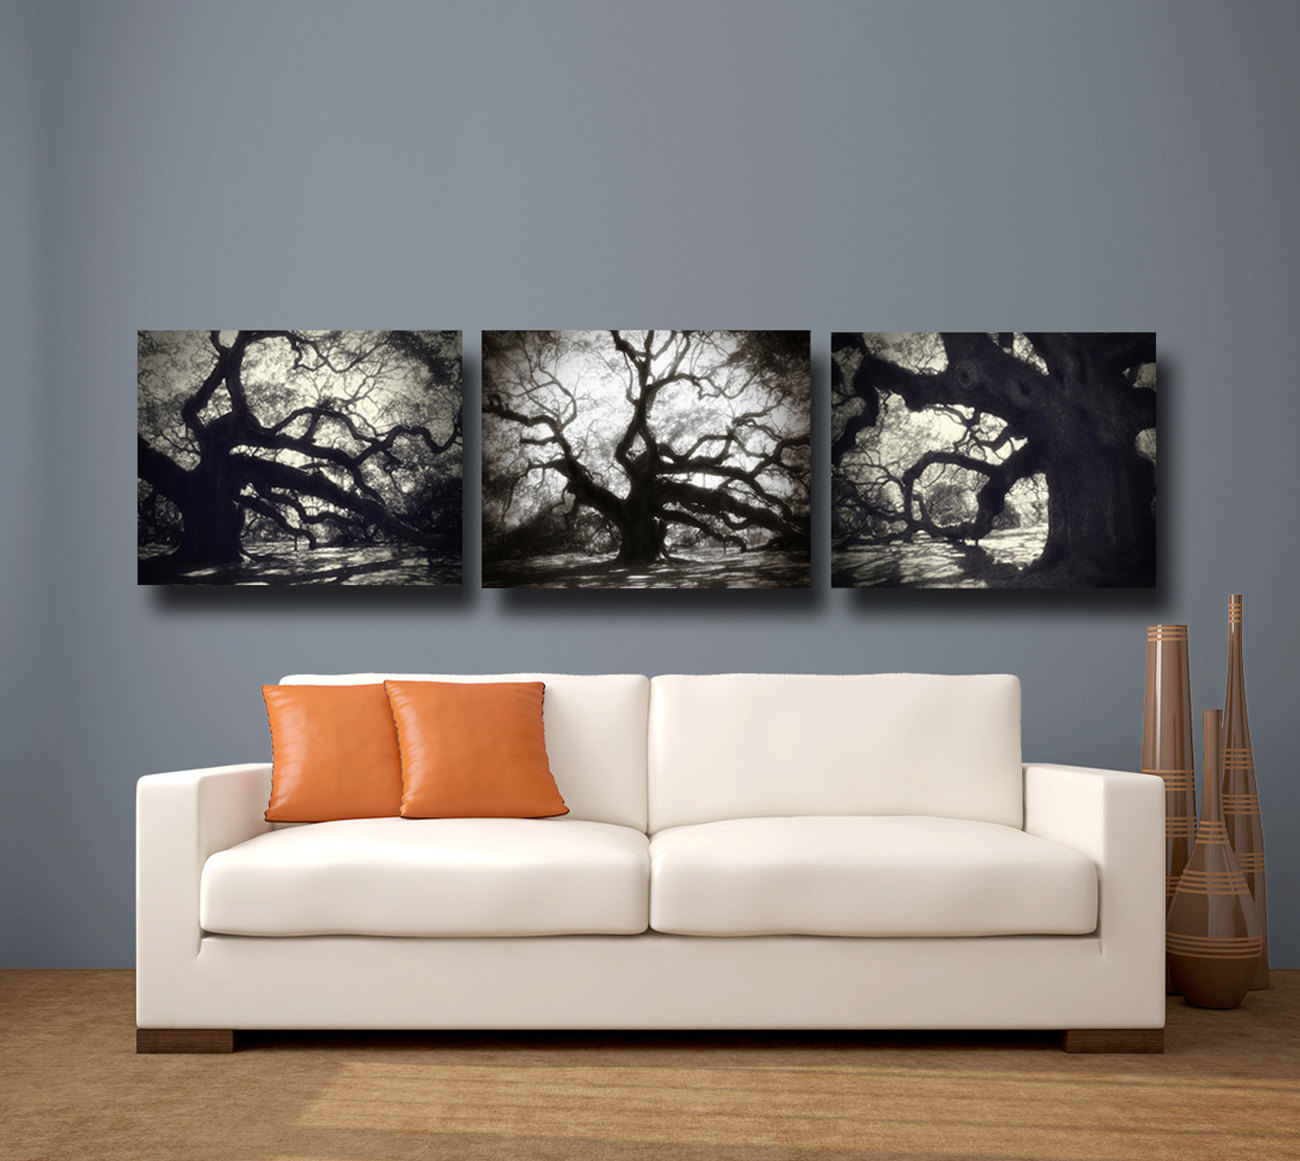 Cheap Wall Canvas Prints Idea 30 Creative And Easy DIY Canvas Wall Art Ideas